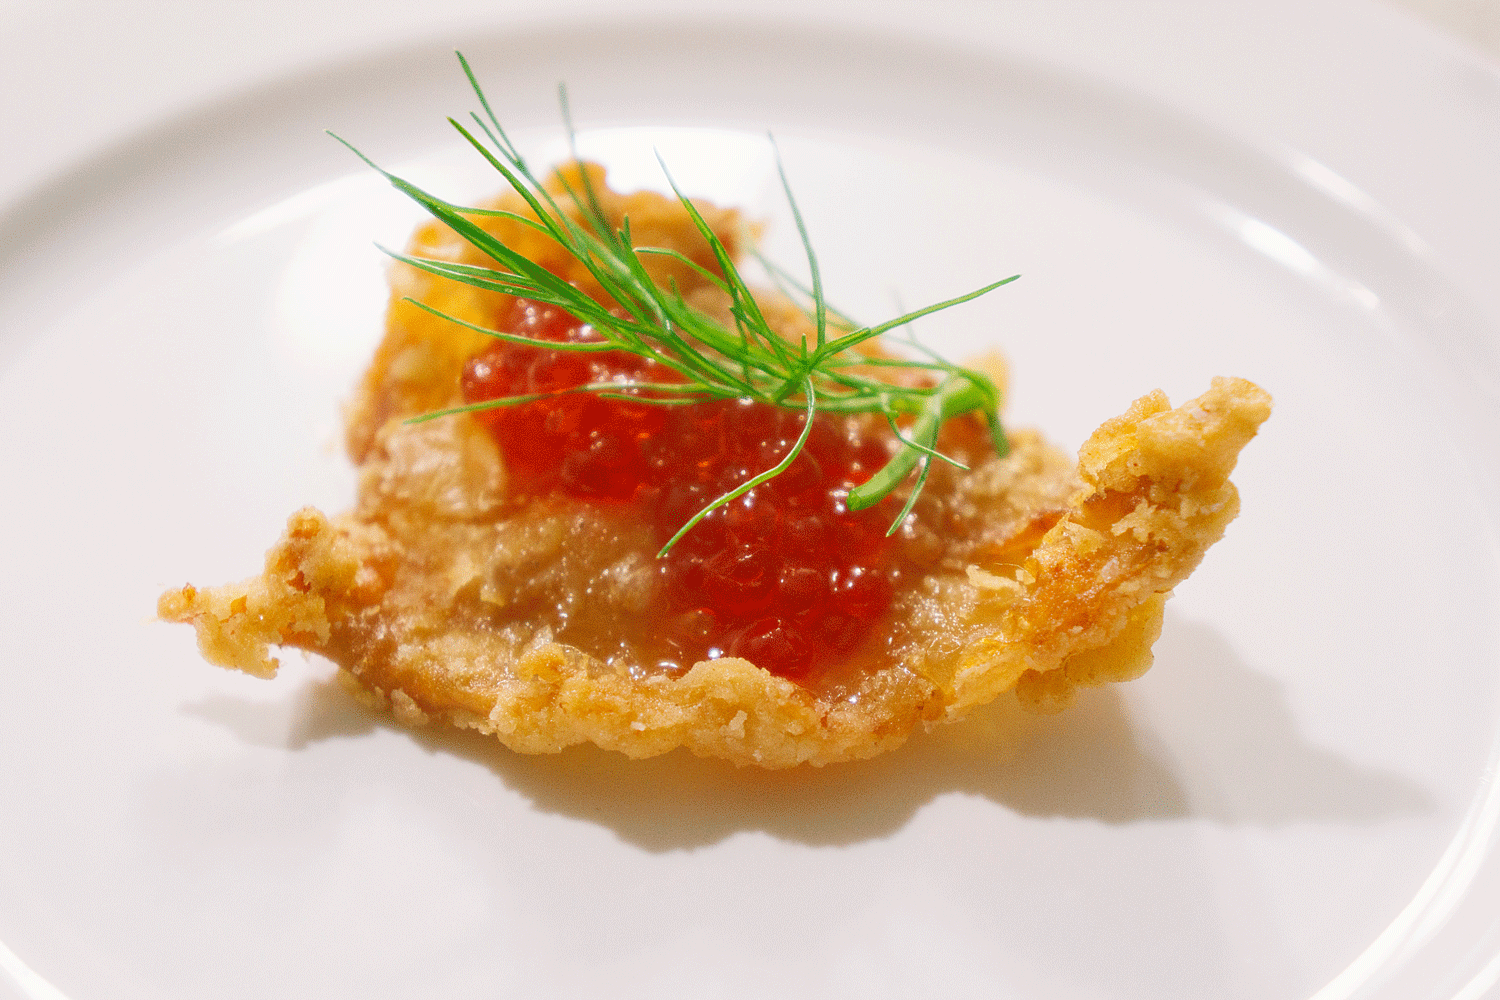 Elevate-Fried-Chicken-Skin-web.png